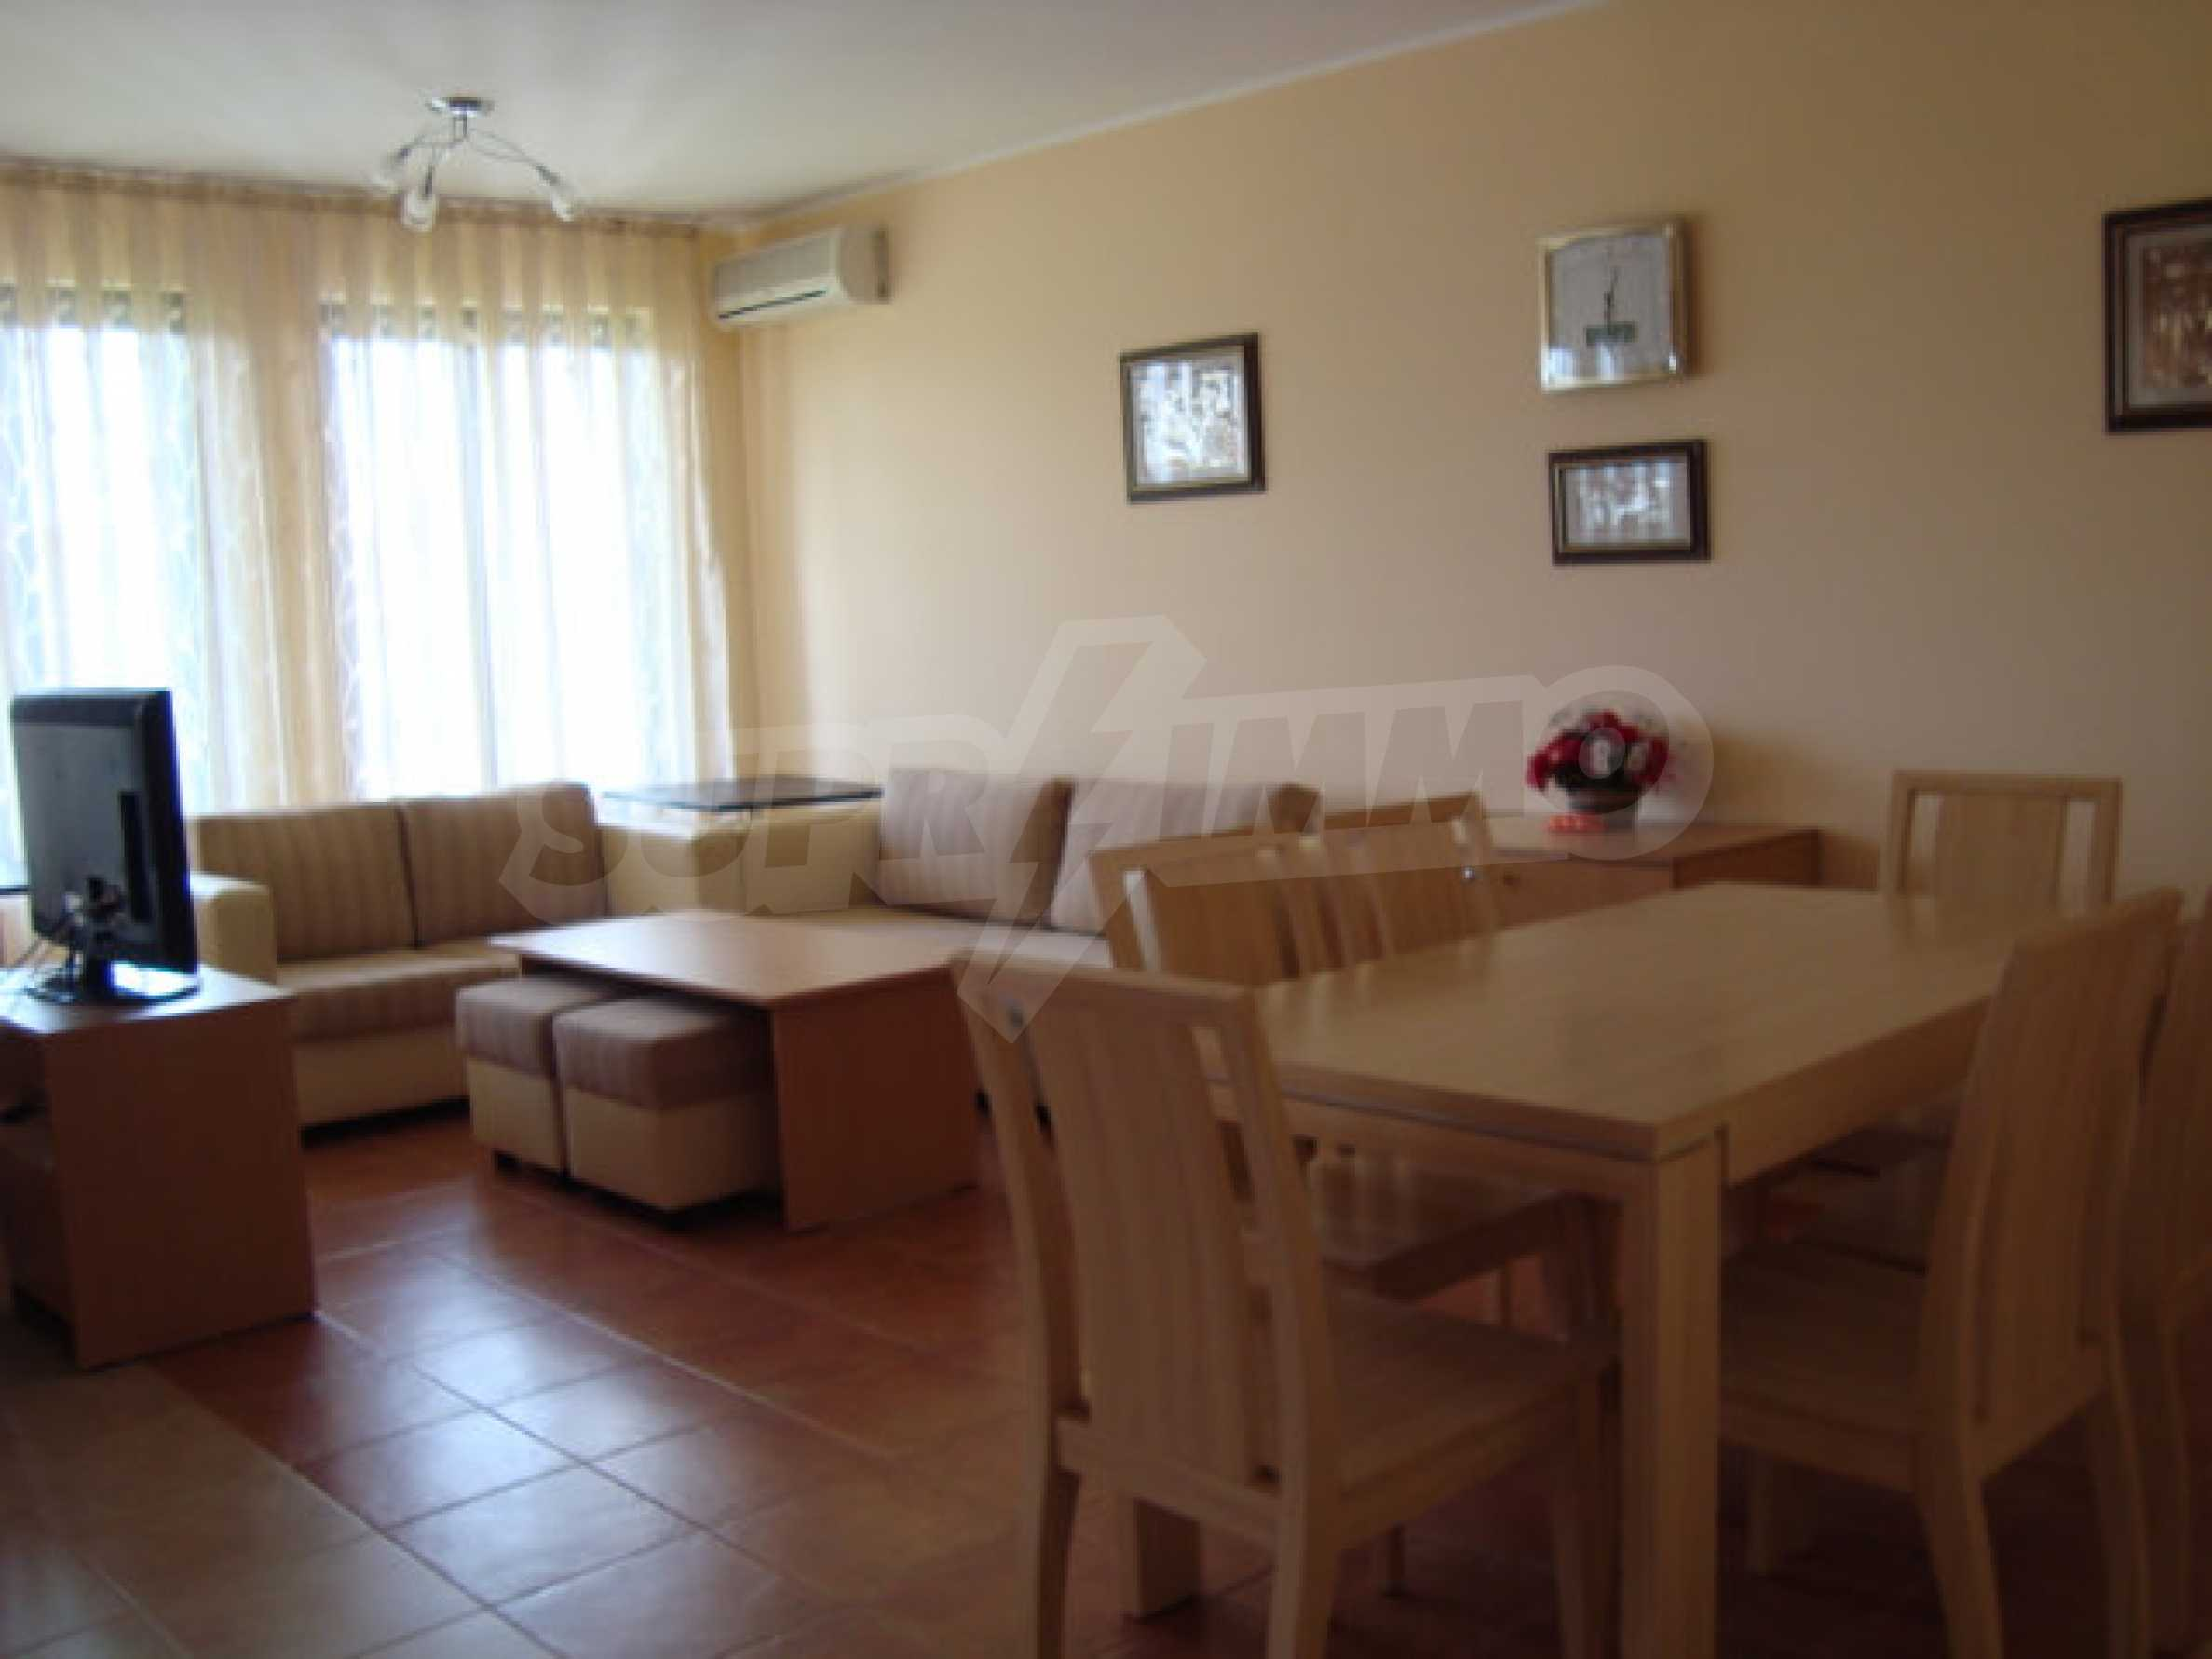 Two-bedroom apartment in Saint Nicholas complex in Chernomorets 1